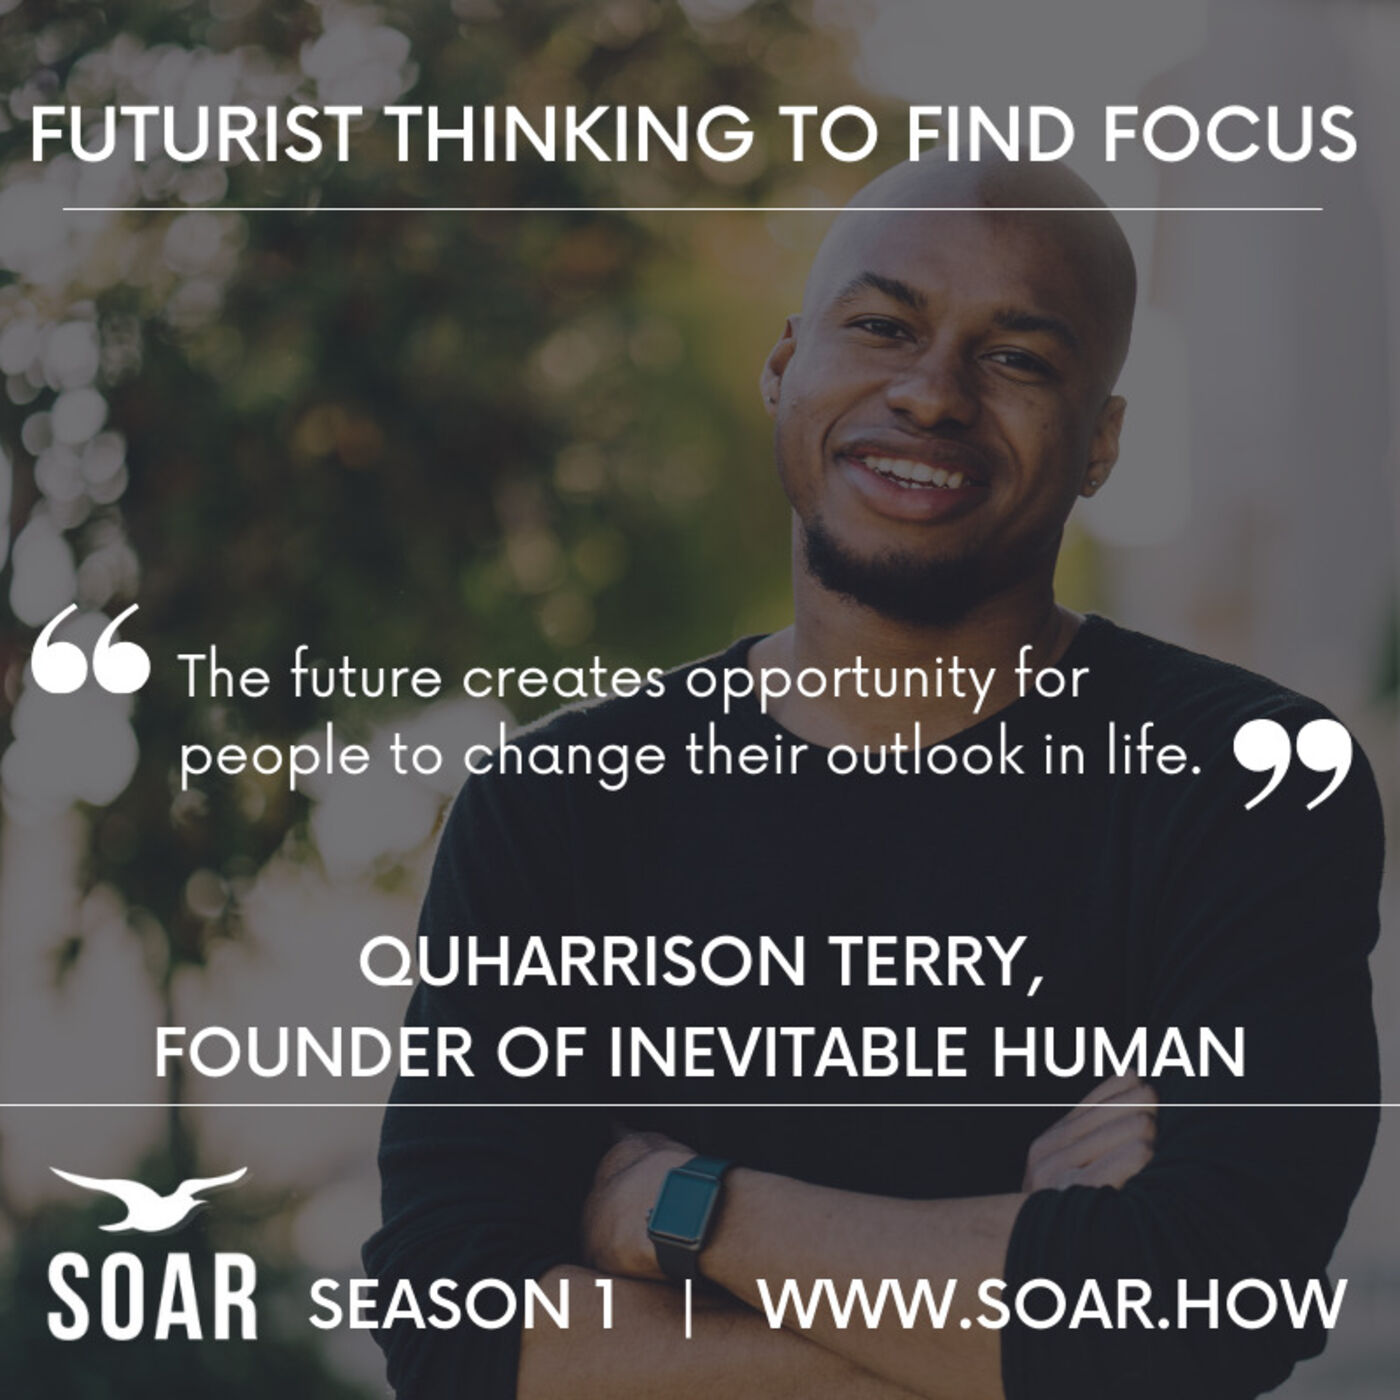 Using Future Thinking To Find Focus with QuHarrison Terry